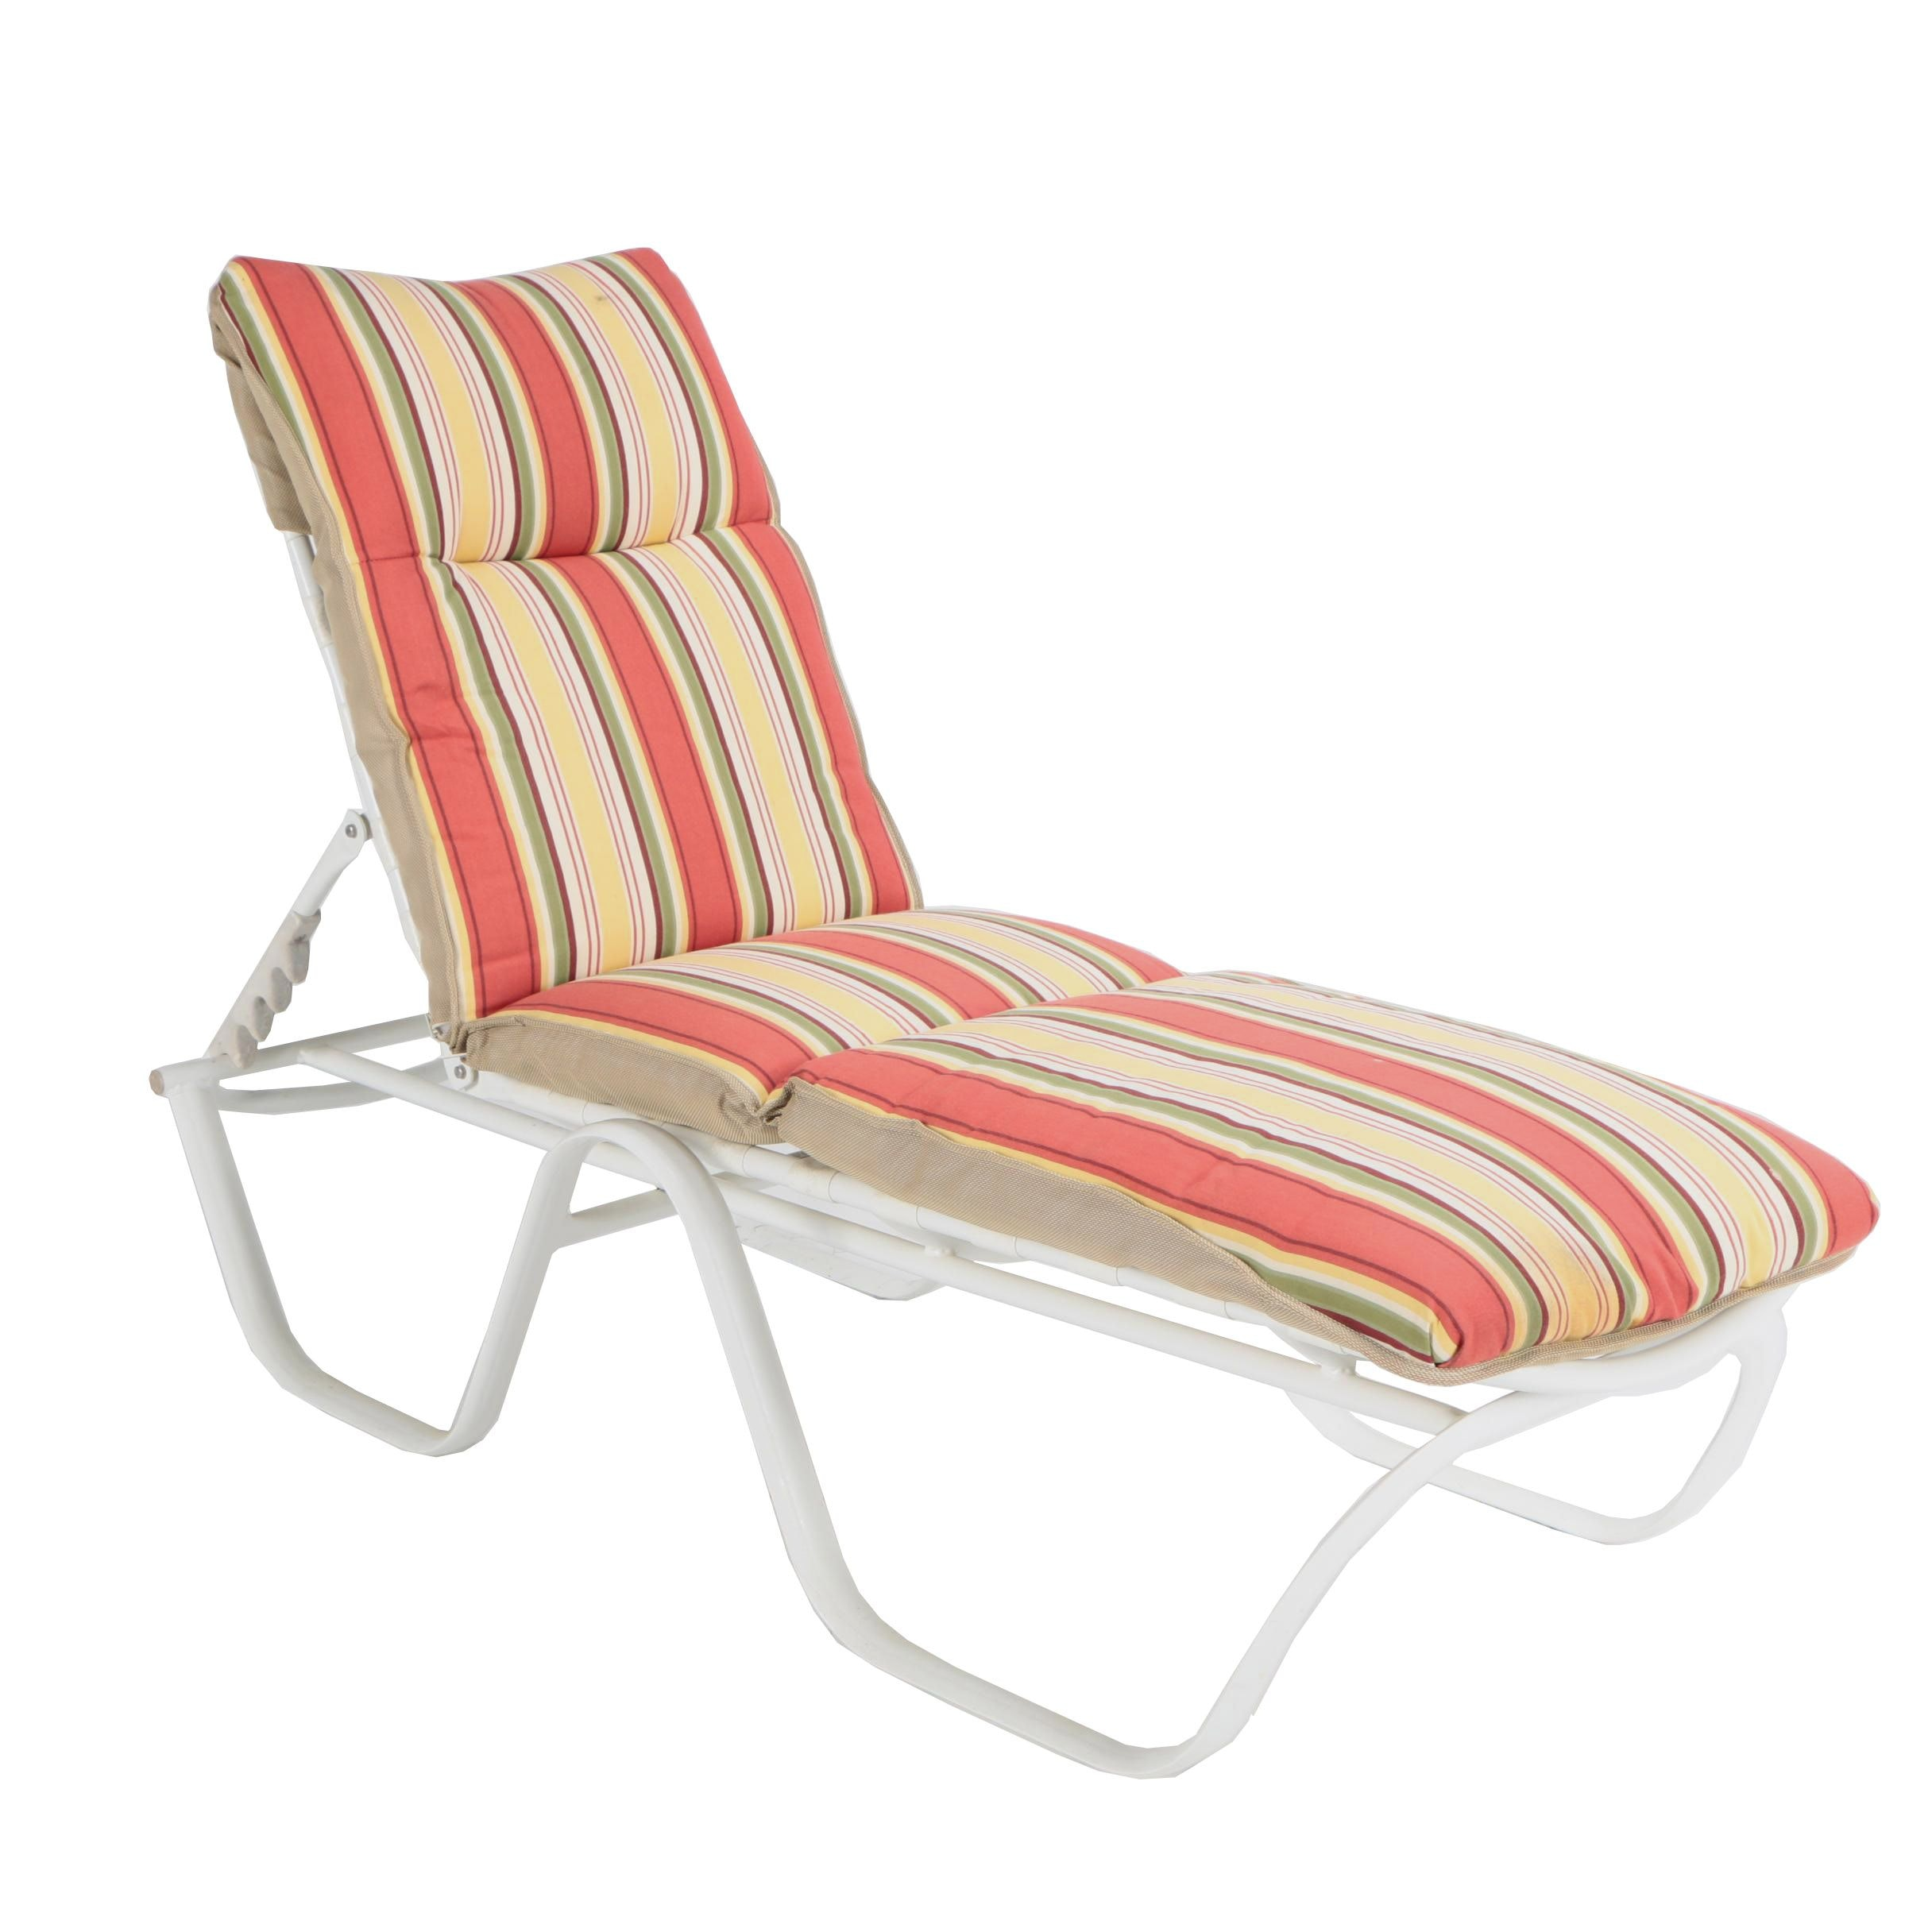 White Metal Patio Chaise Lounge with Striped Cushions